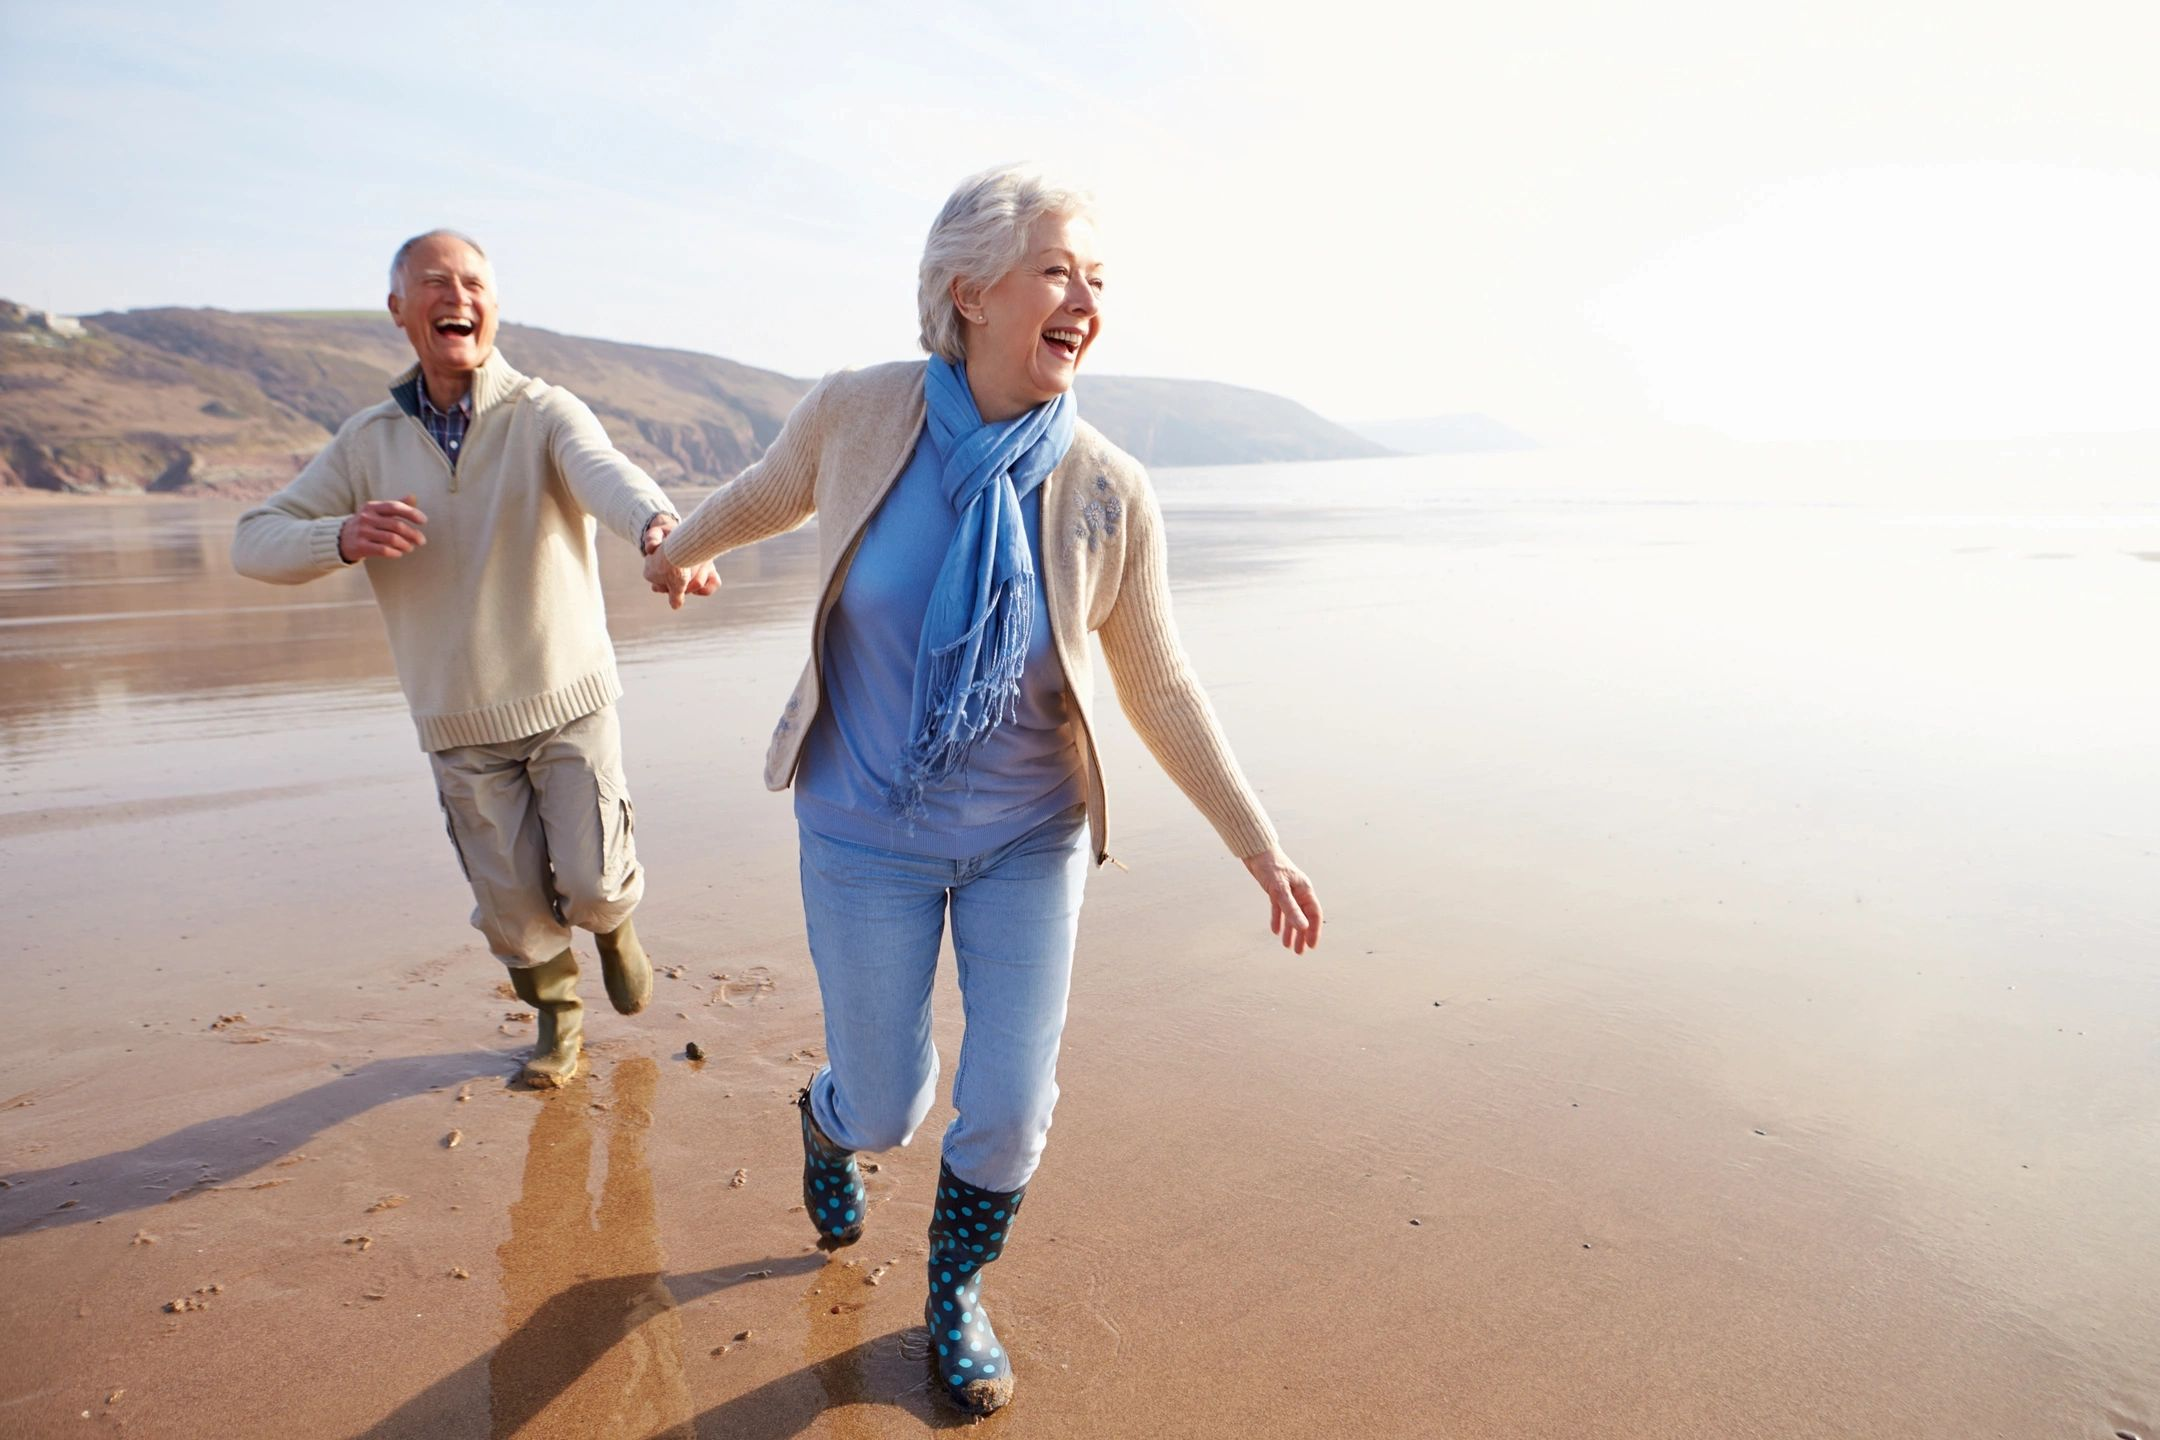 Estate Planning: Having End-of-Life Discussions with Loved Ones